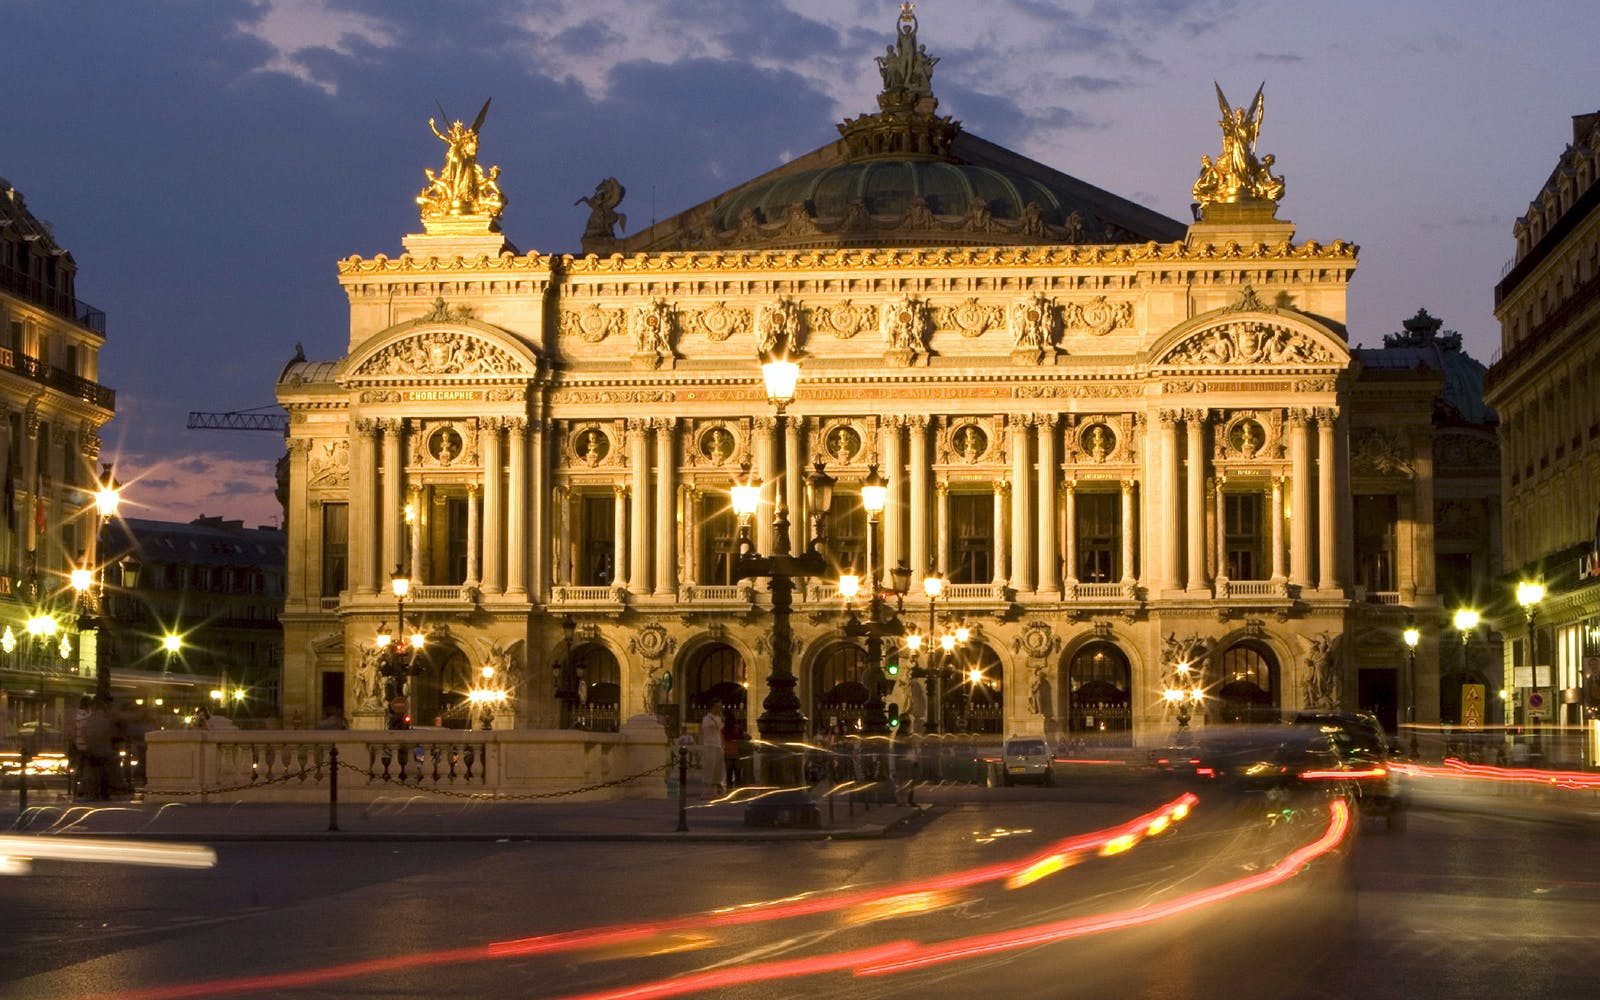 Self Guided Tour of the Opera Garnier